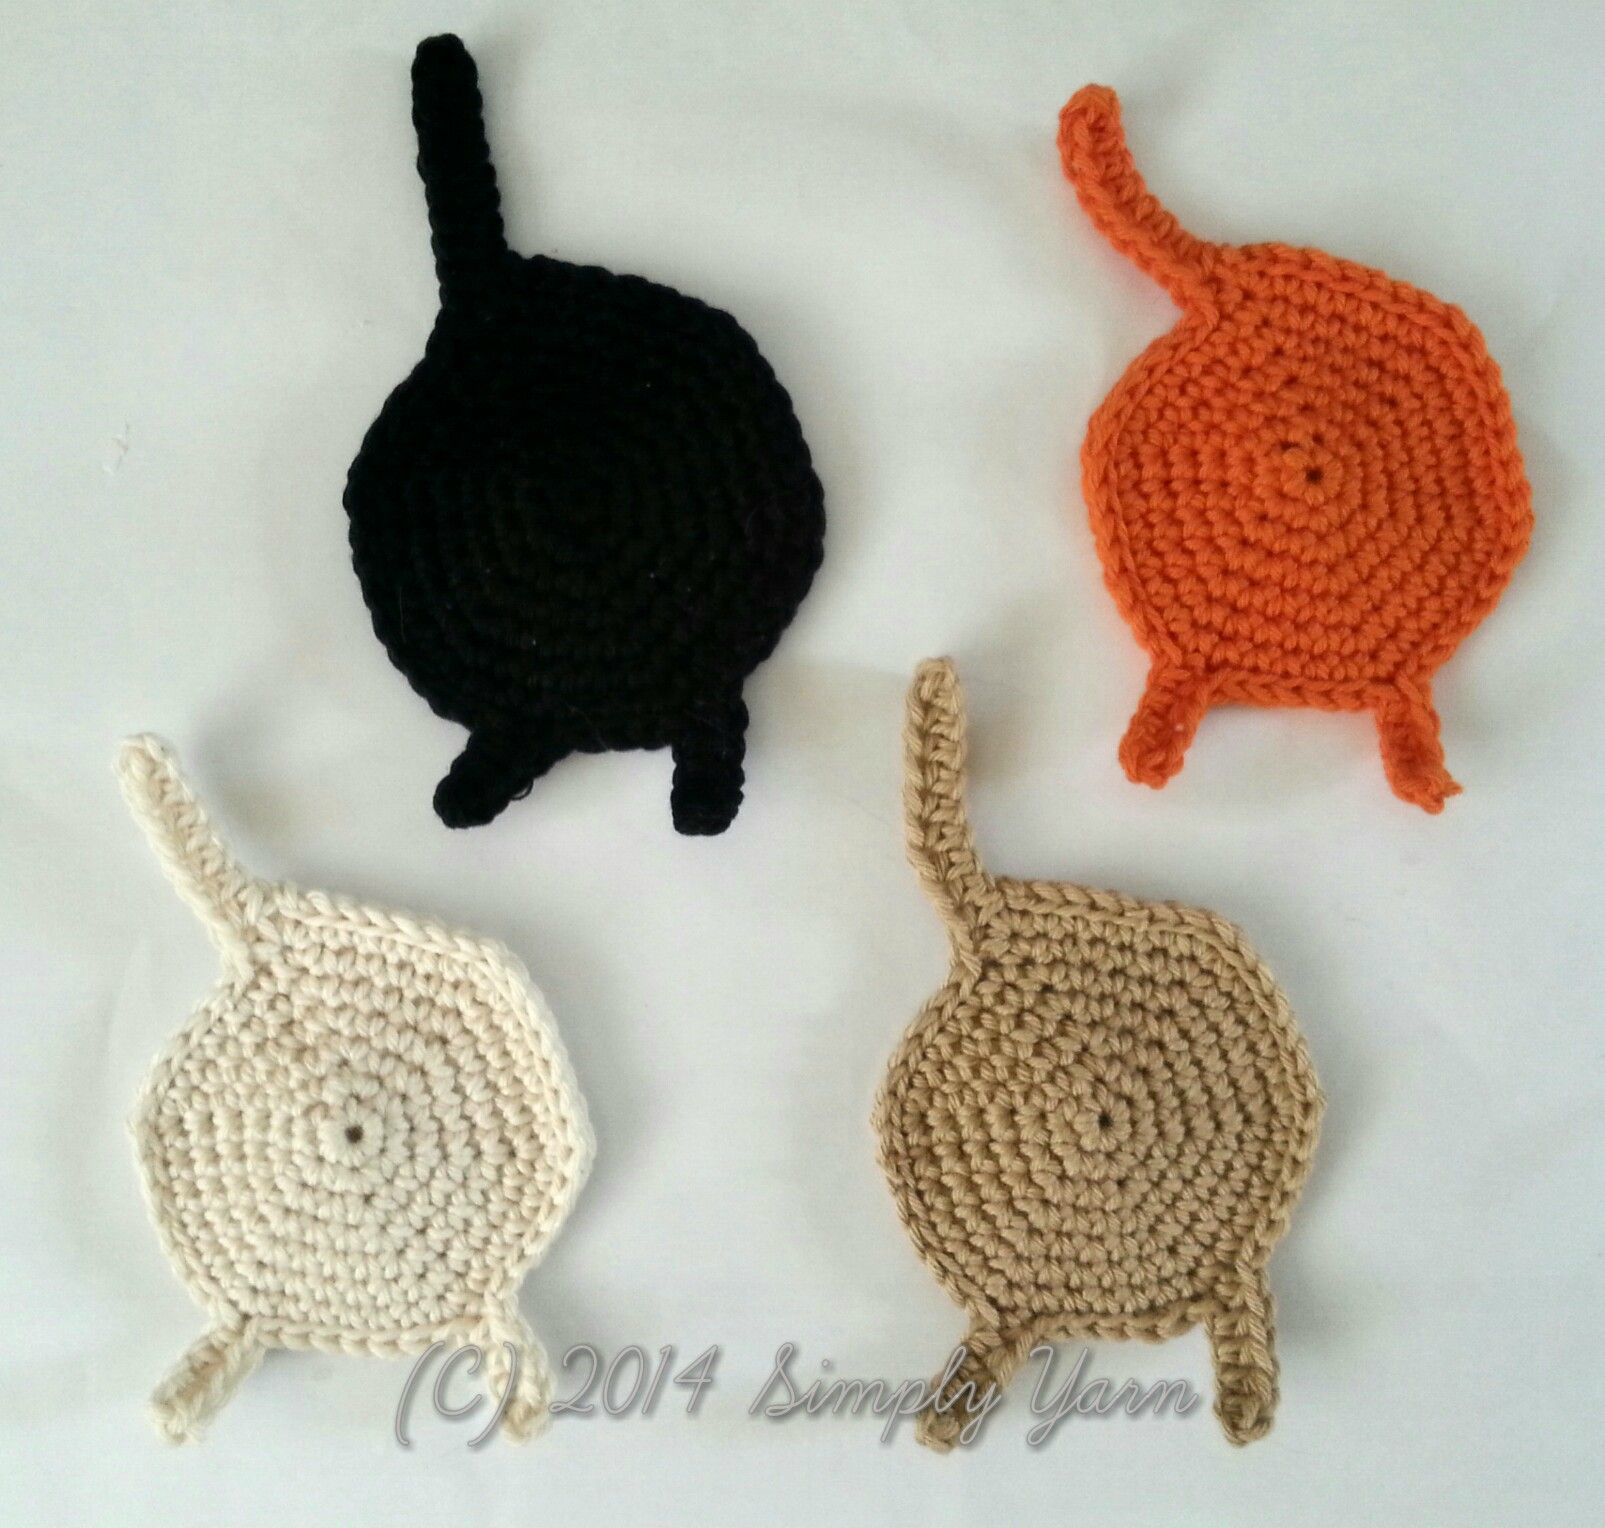 Cat coasters, because you never have enough cat themed stuff around ...